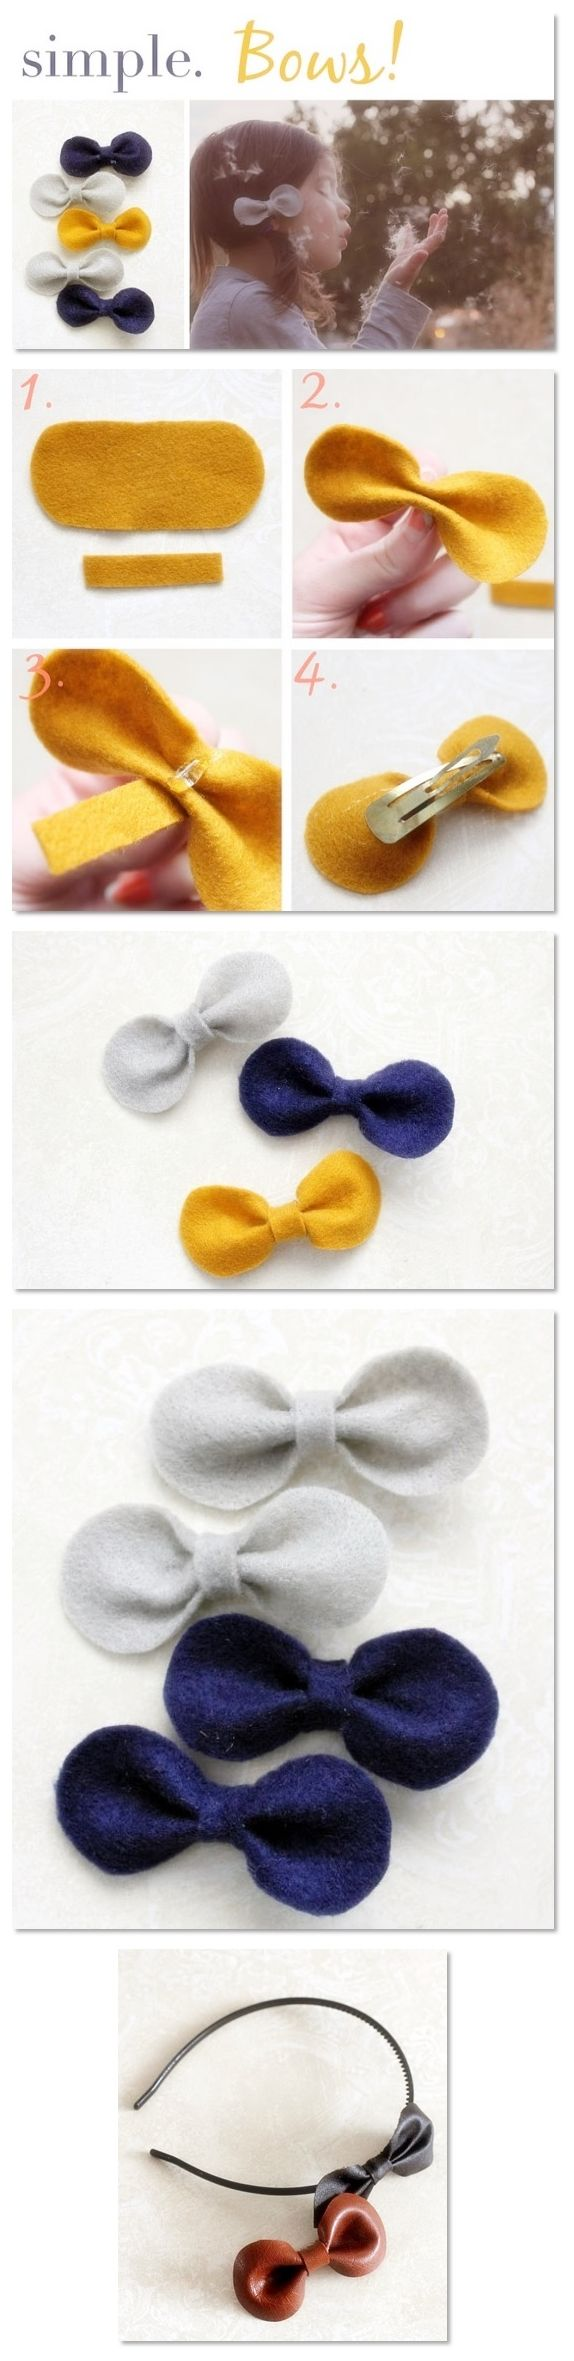 Tutorial: Felt Bows - small